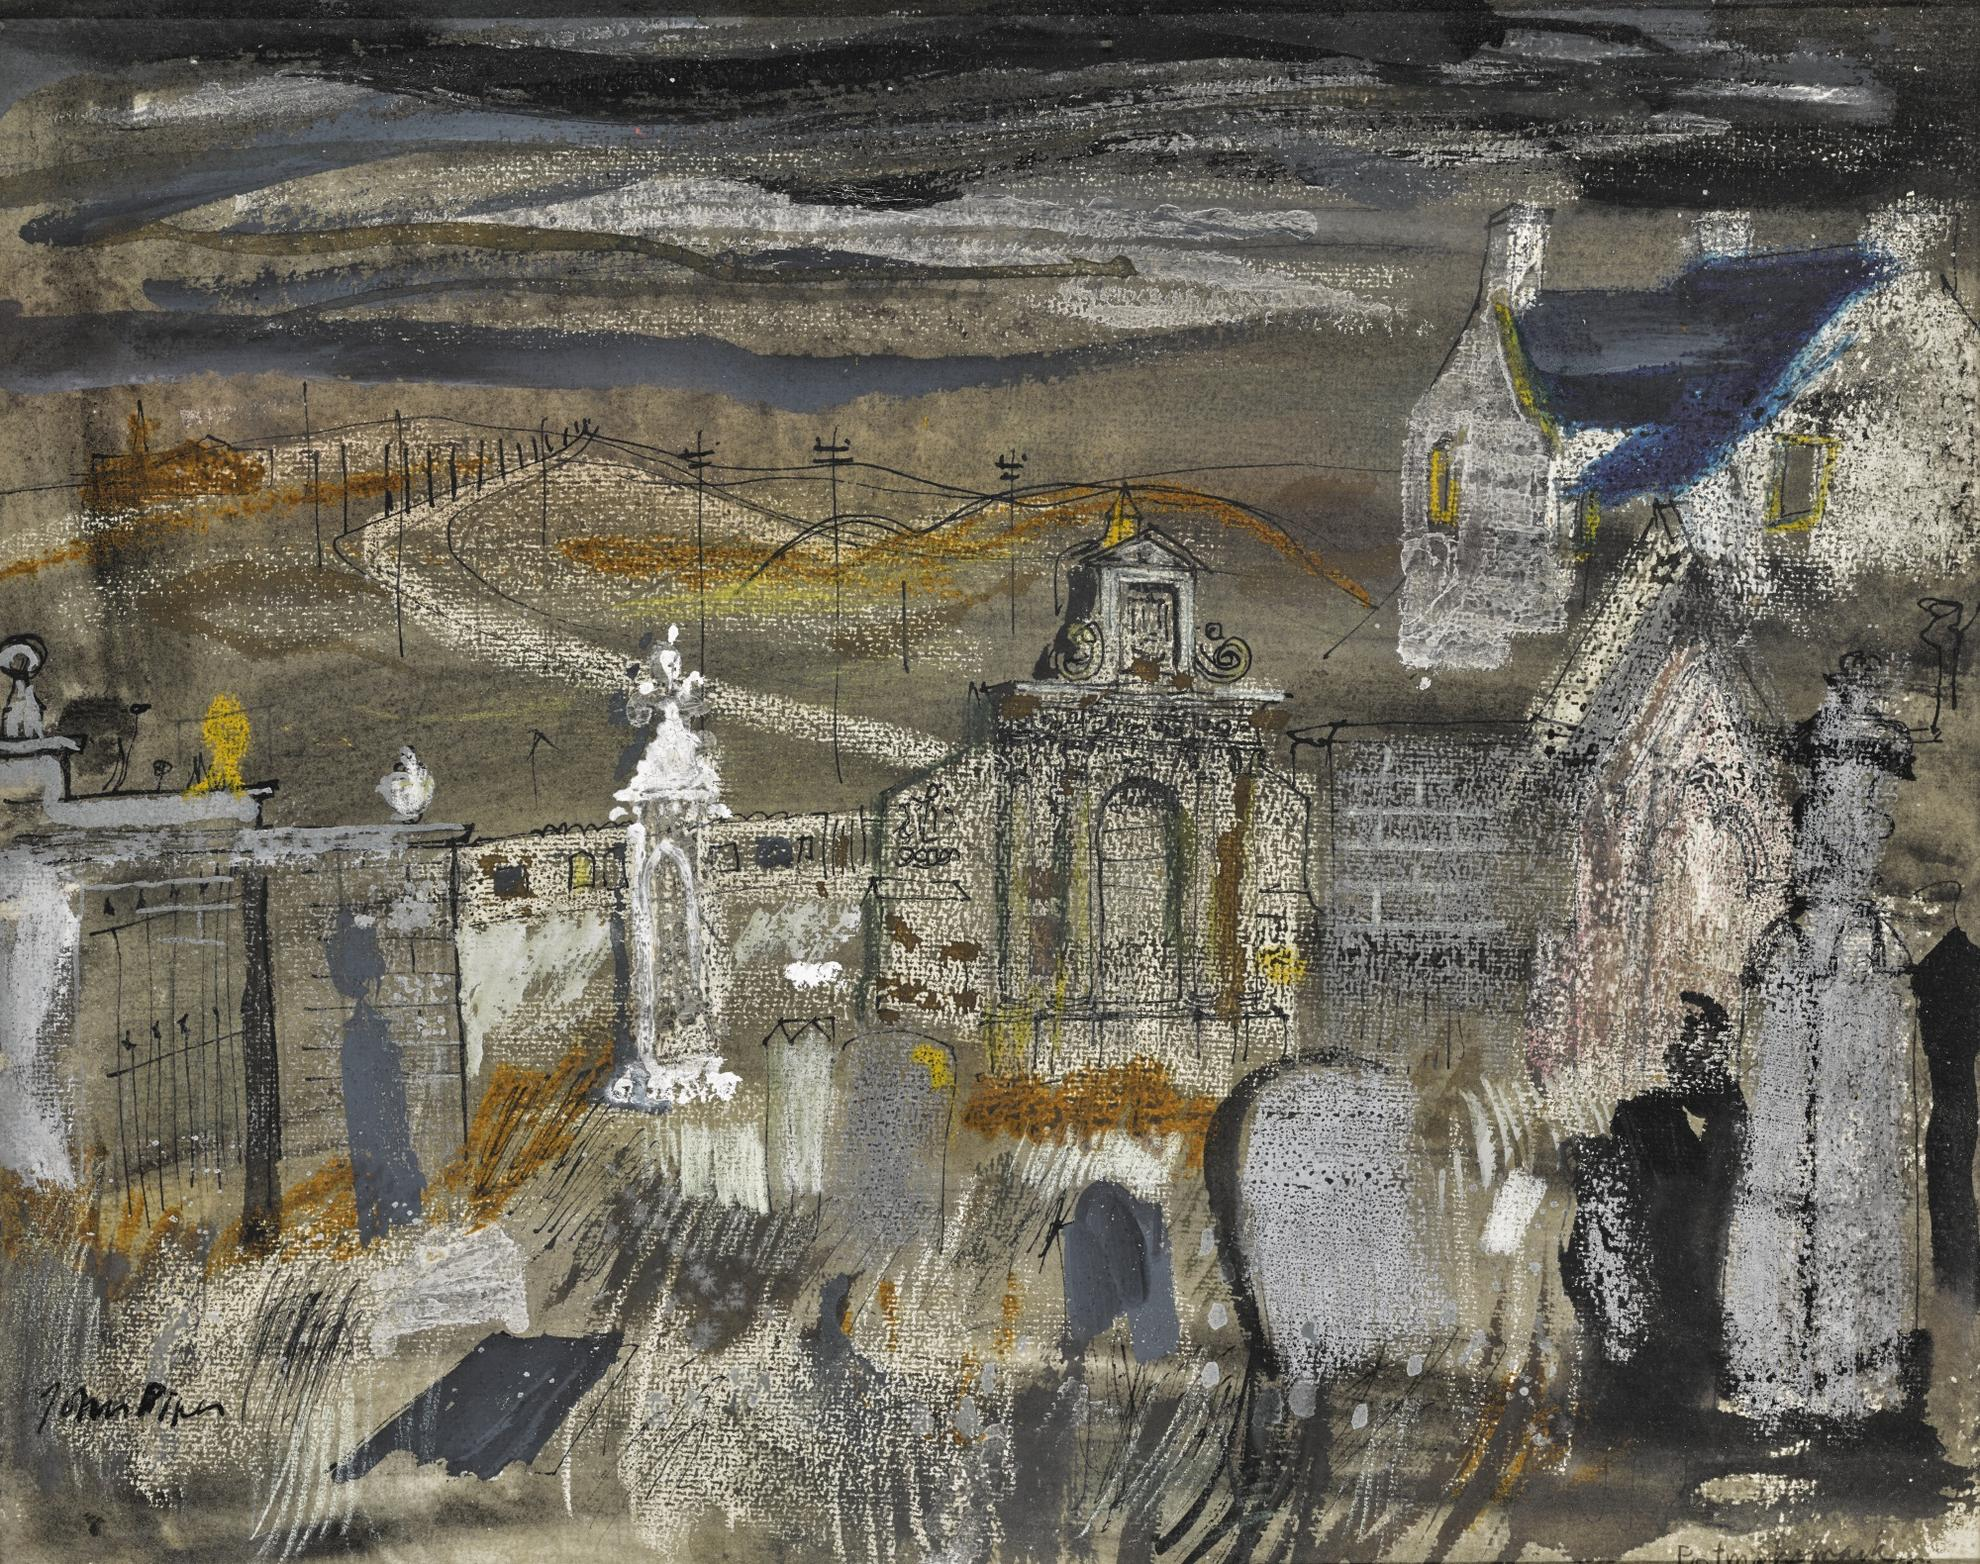 John Piper-Portmahomack, Old Church Yard-